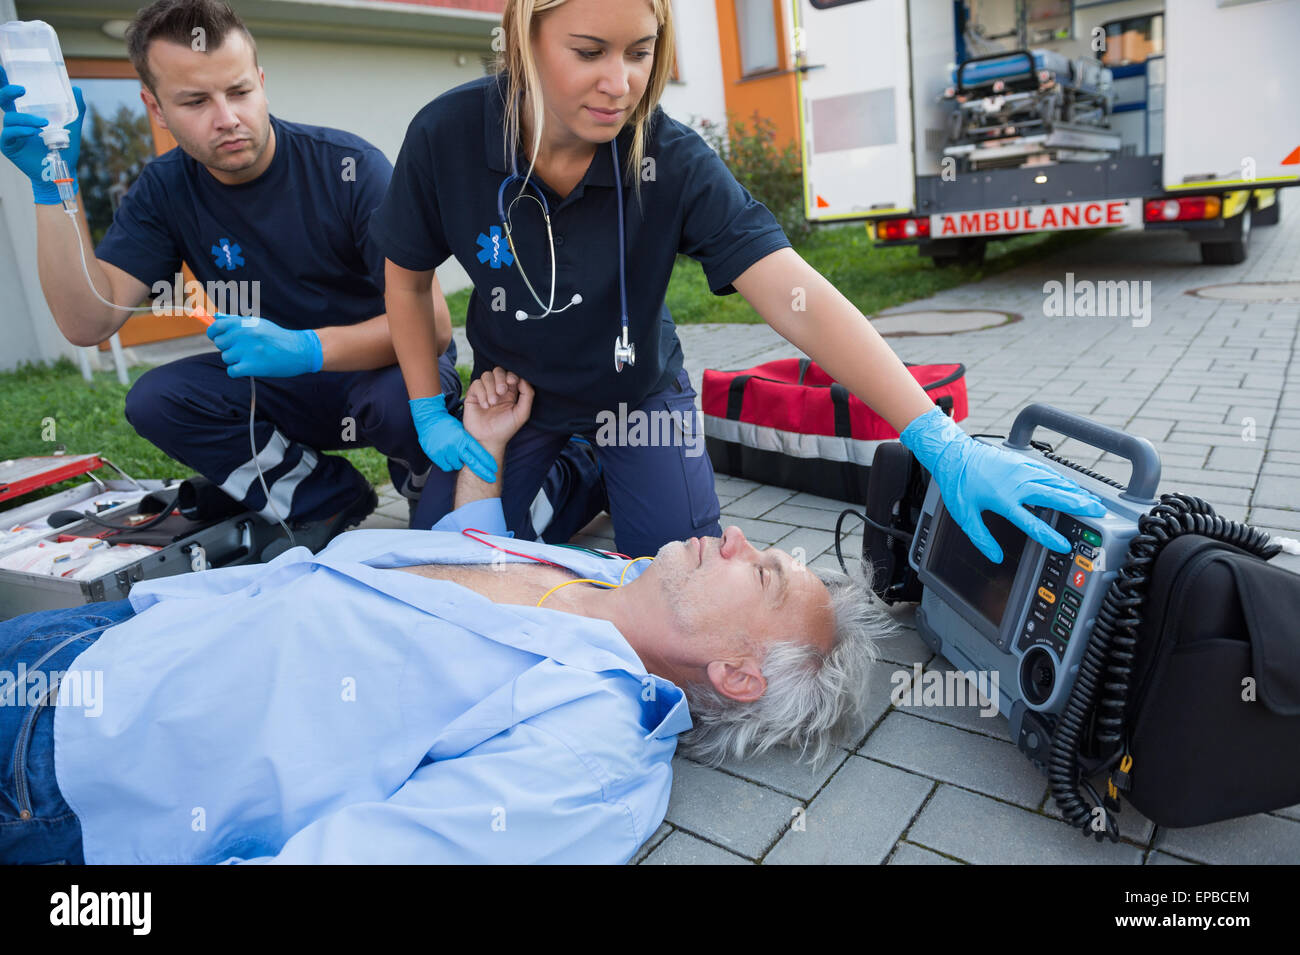 Paramedics checking pulse of unconscious man - Stock Image